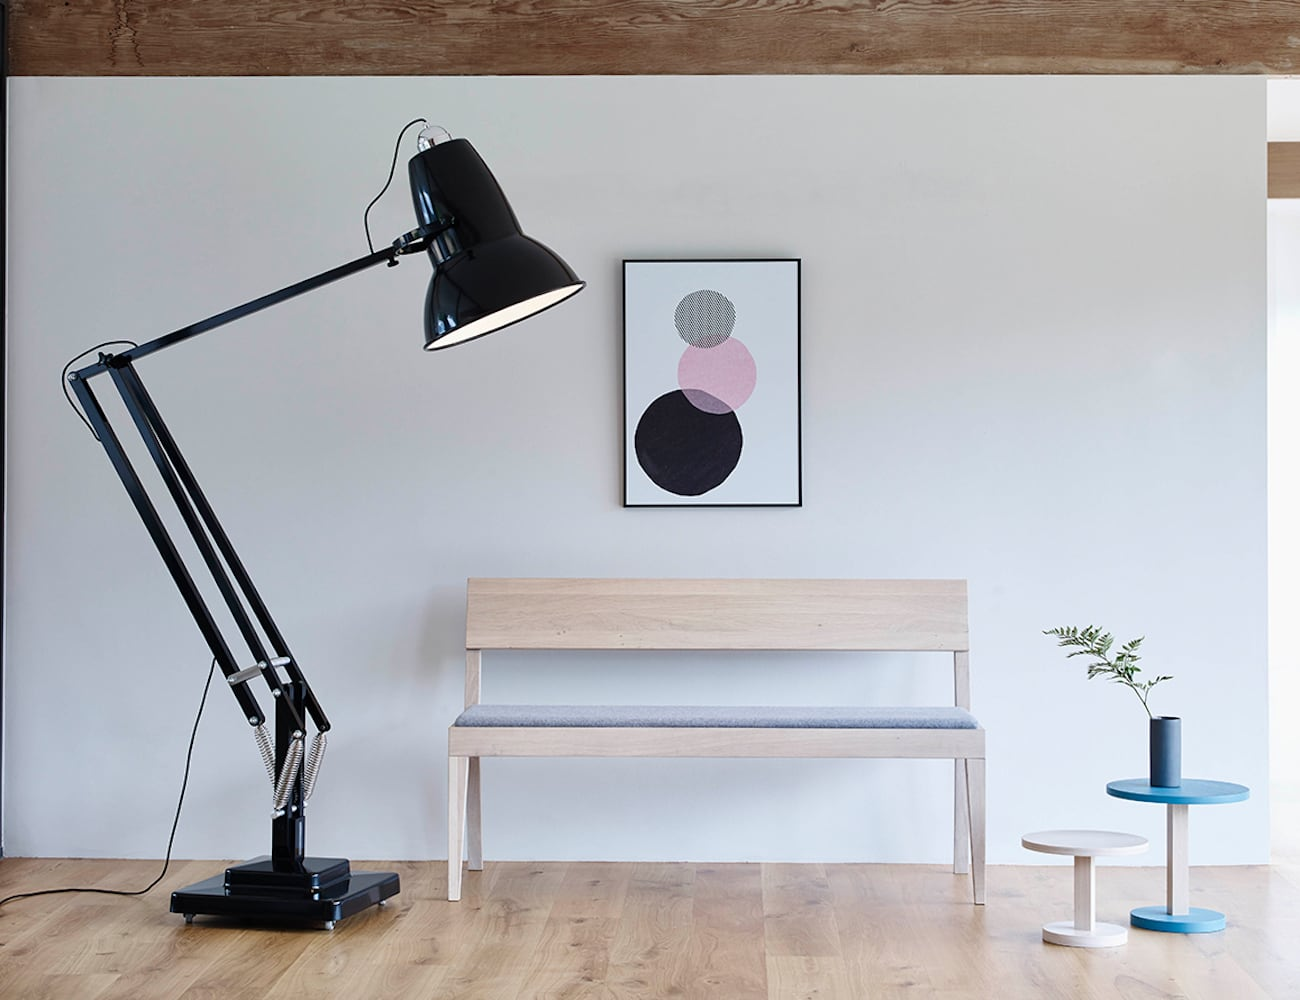 Original 1227 Giant Floor Lamp gives your home some whimsy